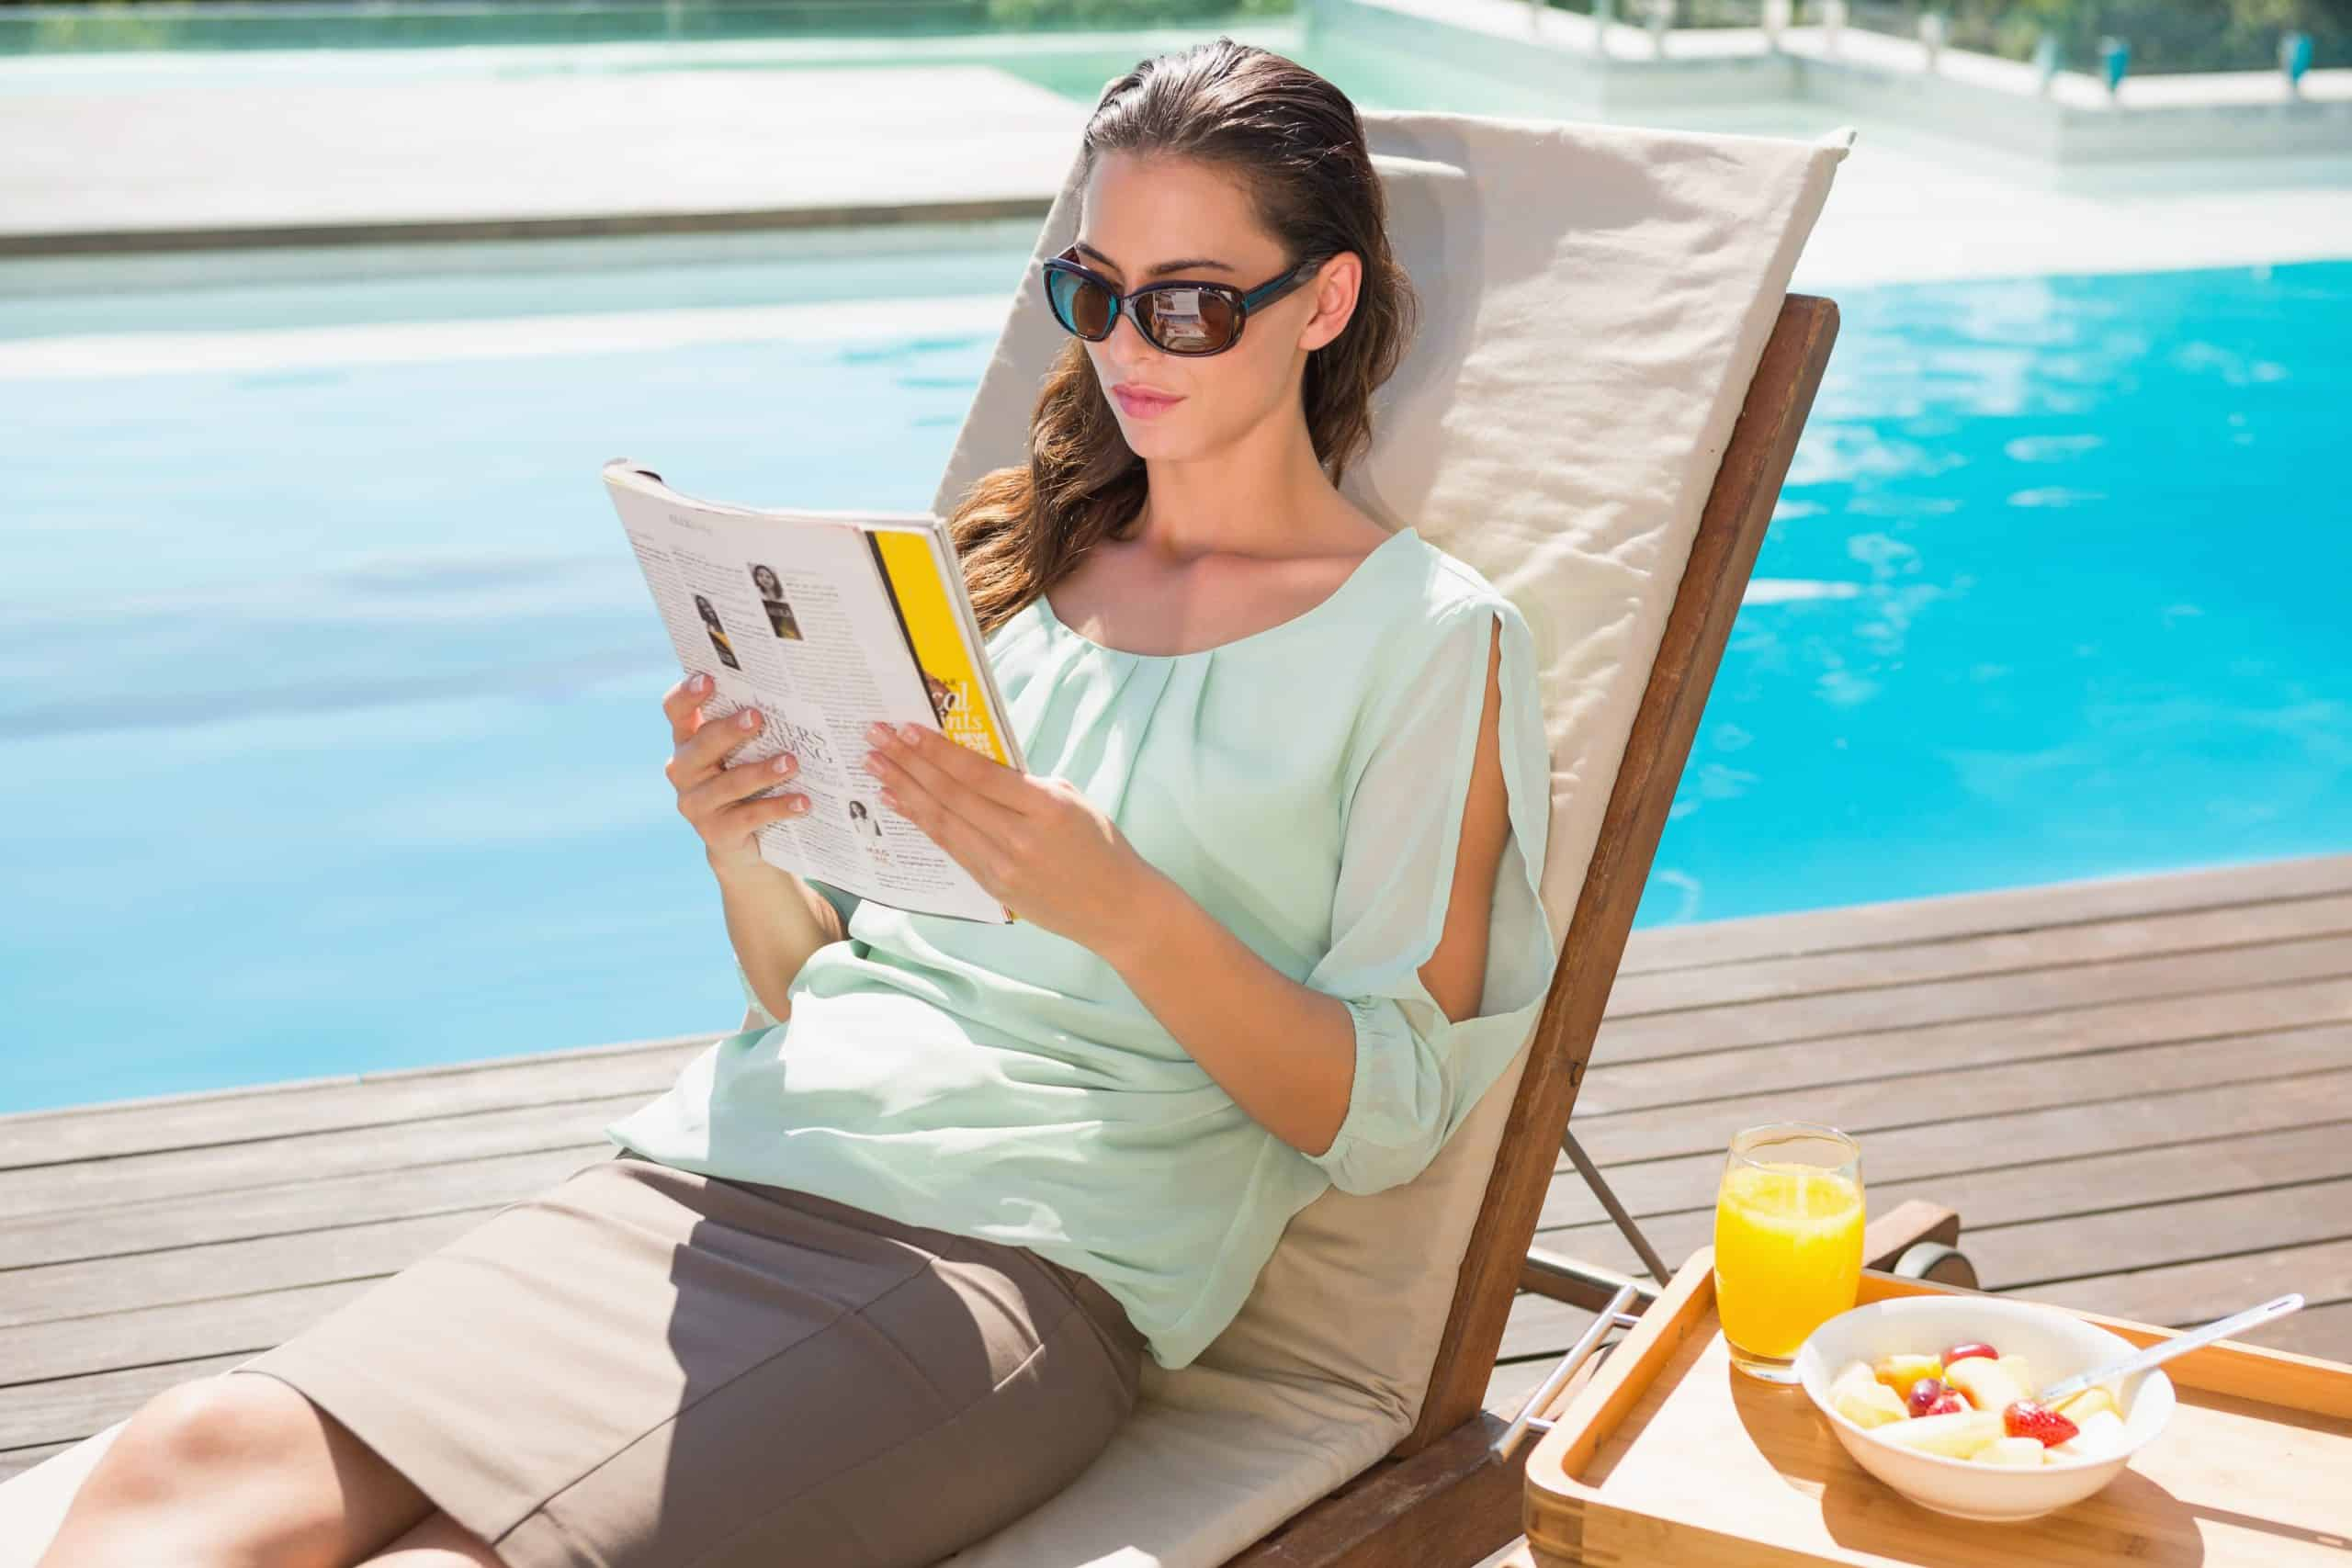 Reading-With-Sunglasses-Womens-Reading-Sunglasses